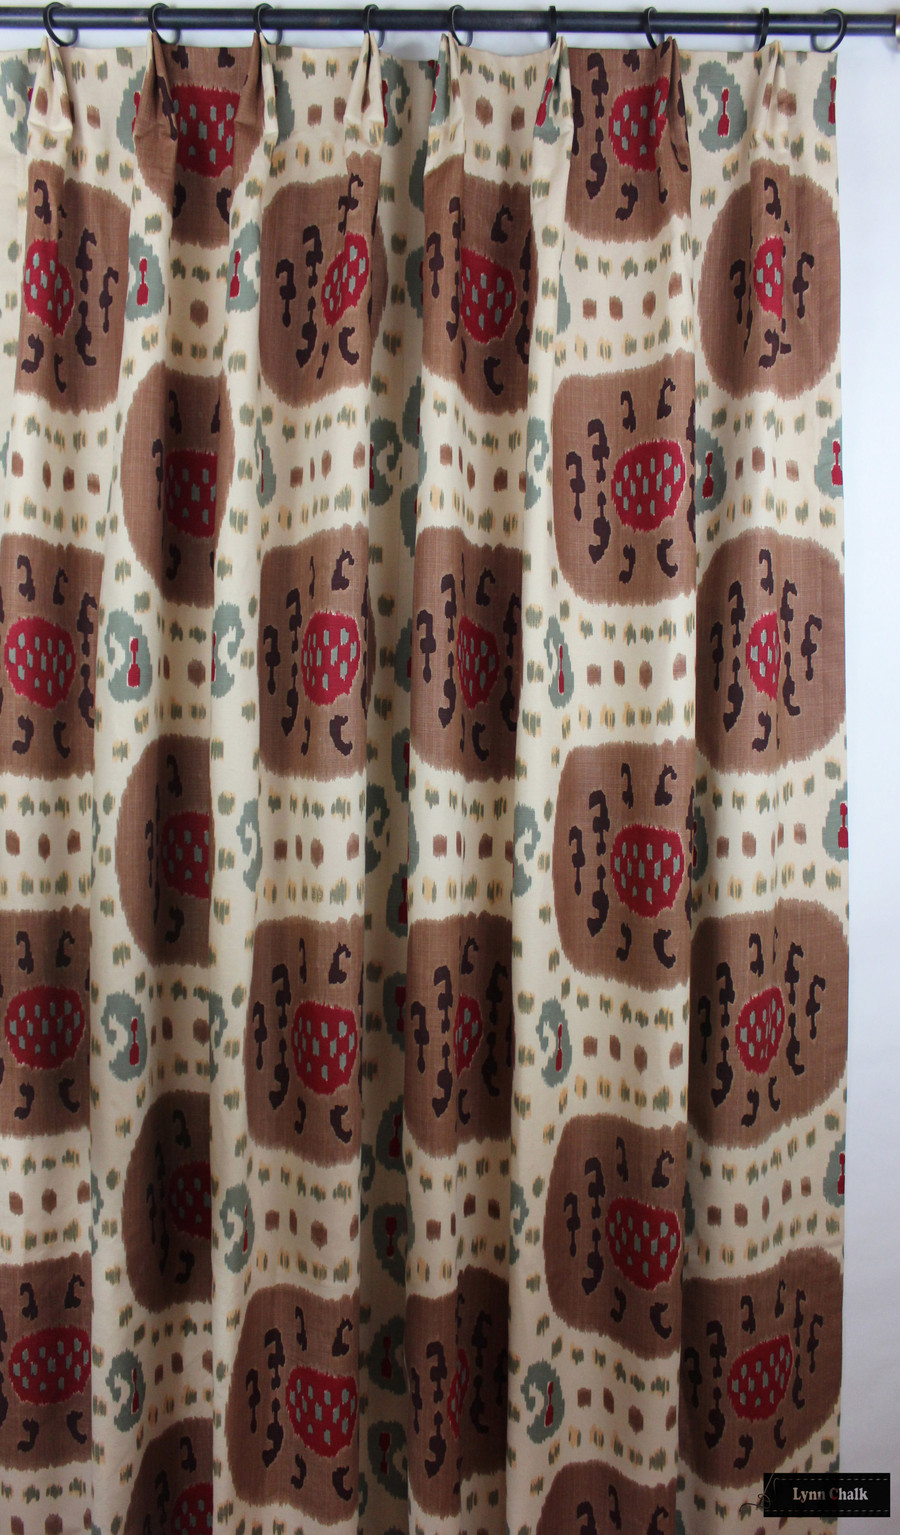 Custom Drapes in Samarkand Cotton and Linen Print Brown on Beige BR-71110_08